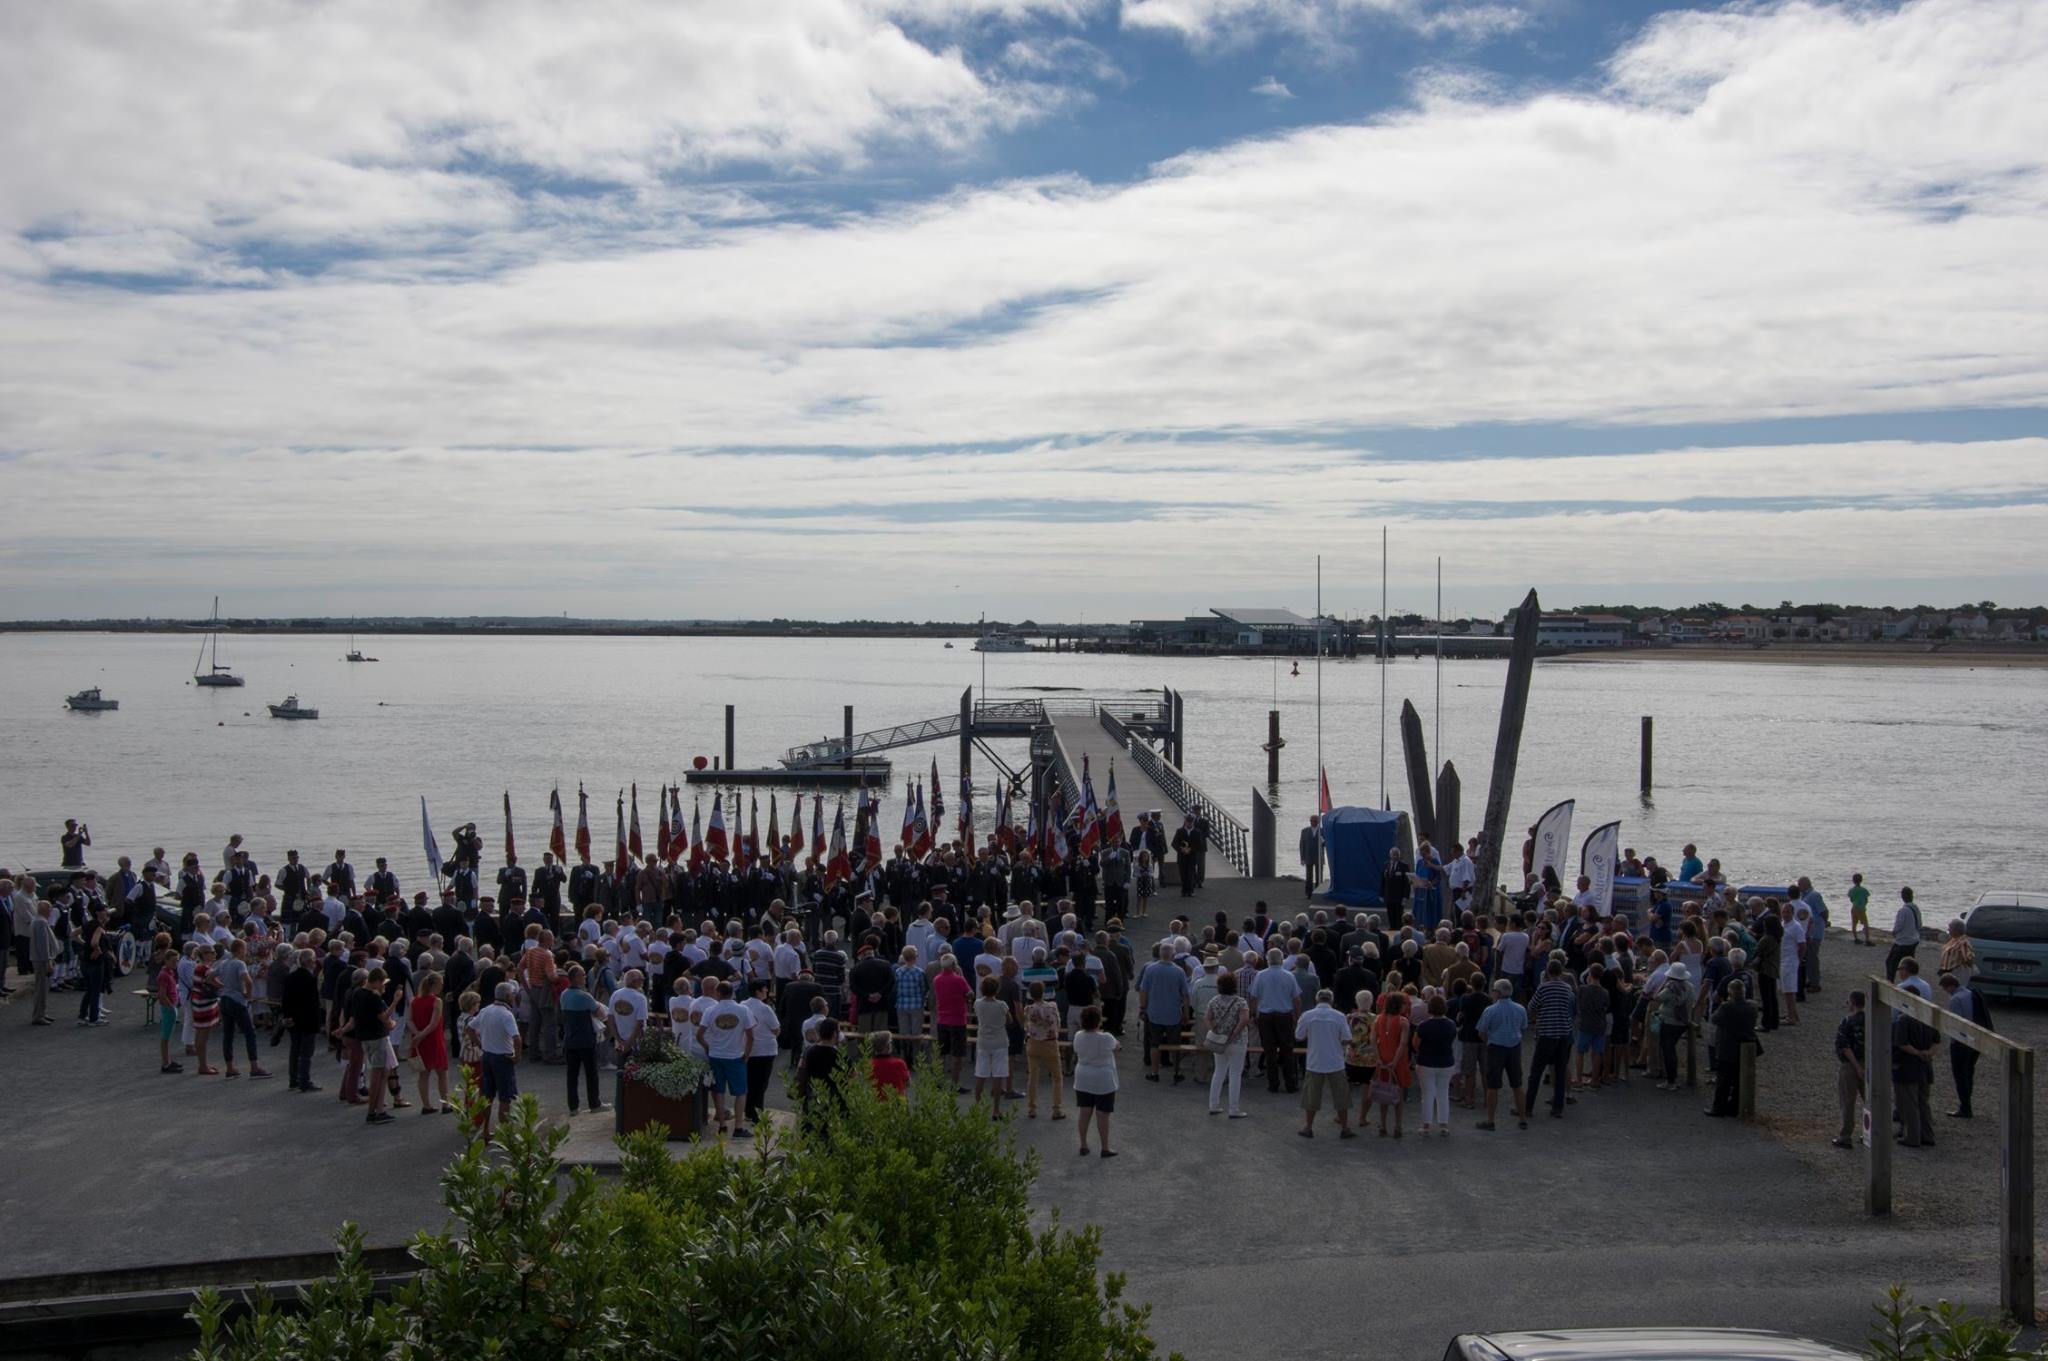 Photo of the commemorative ceremony on August 6, 2016, in Barbâtre, Île de Noirmoutier, France.